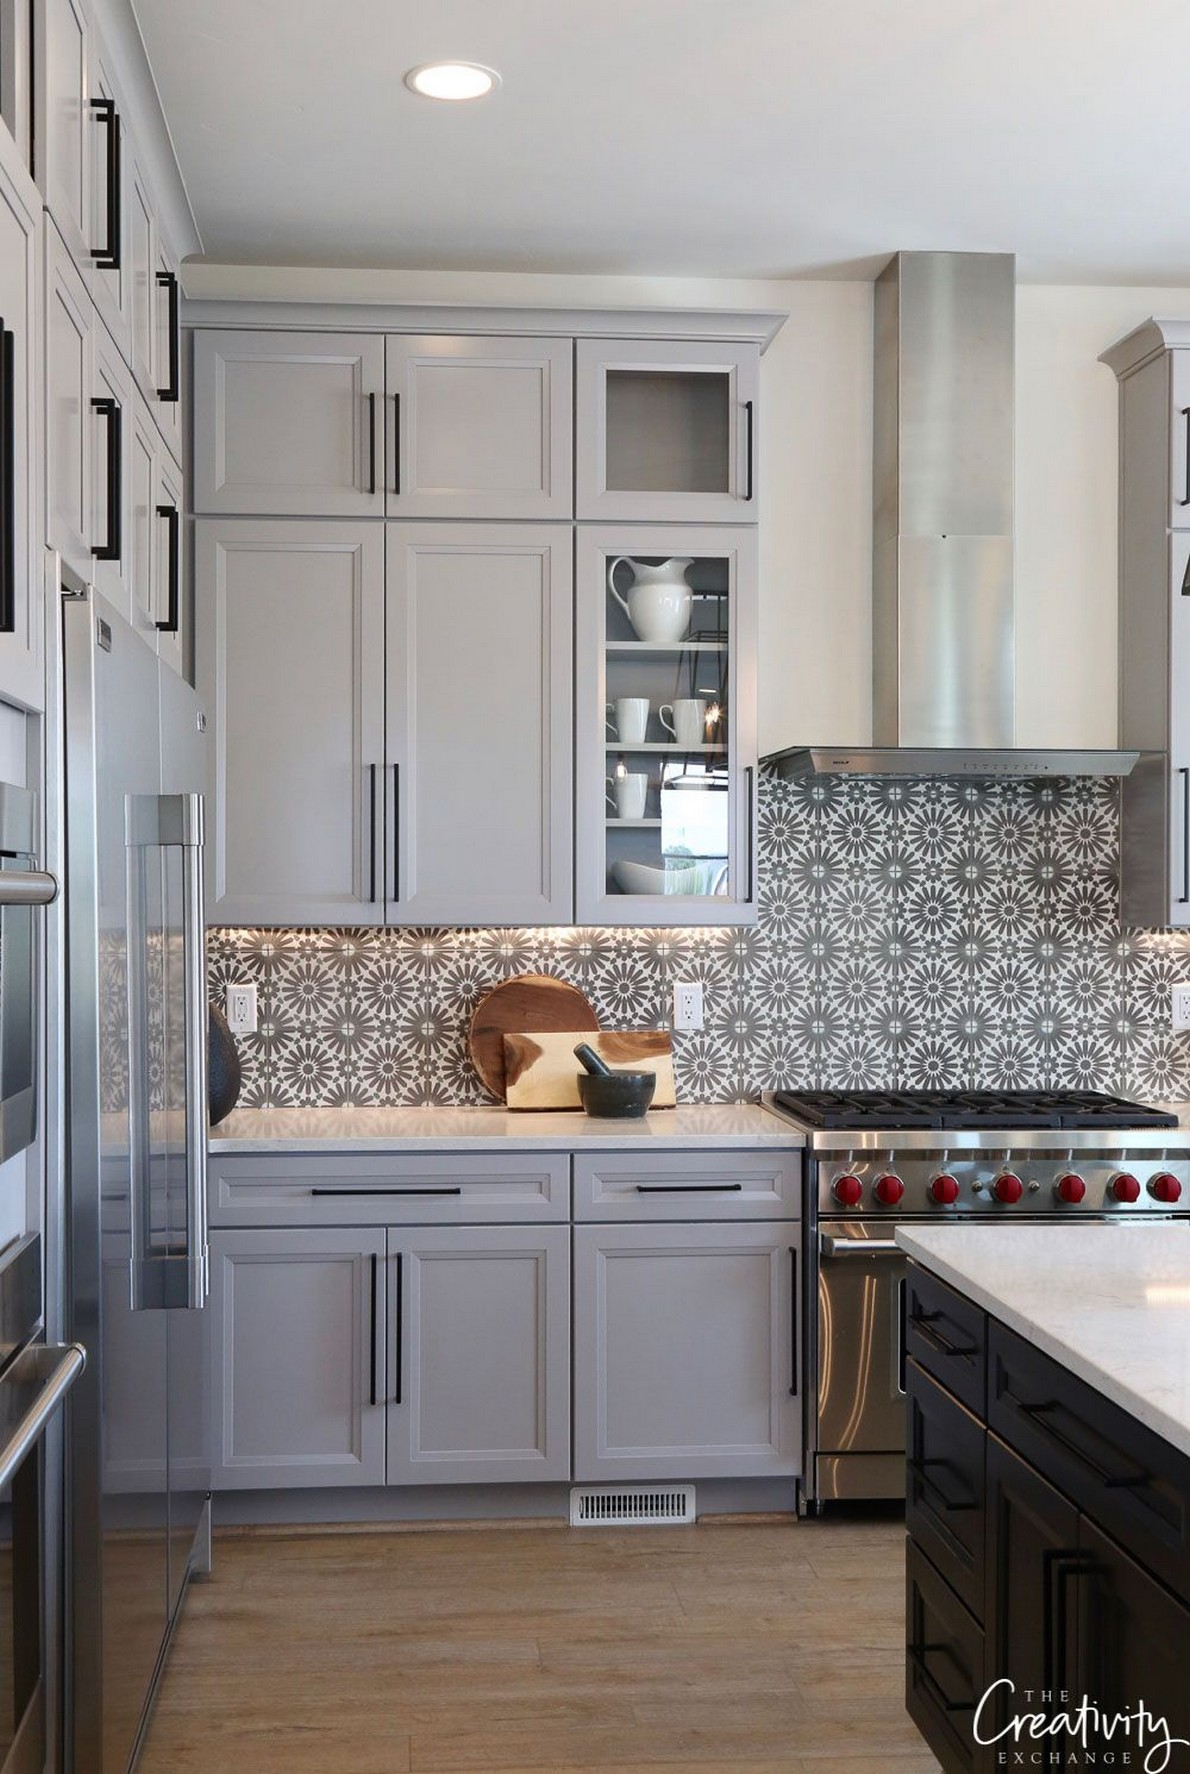 71 Painted Kitchen Cabinets Ideas For Home Decor 39